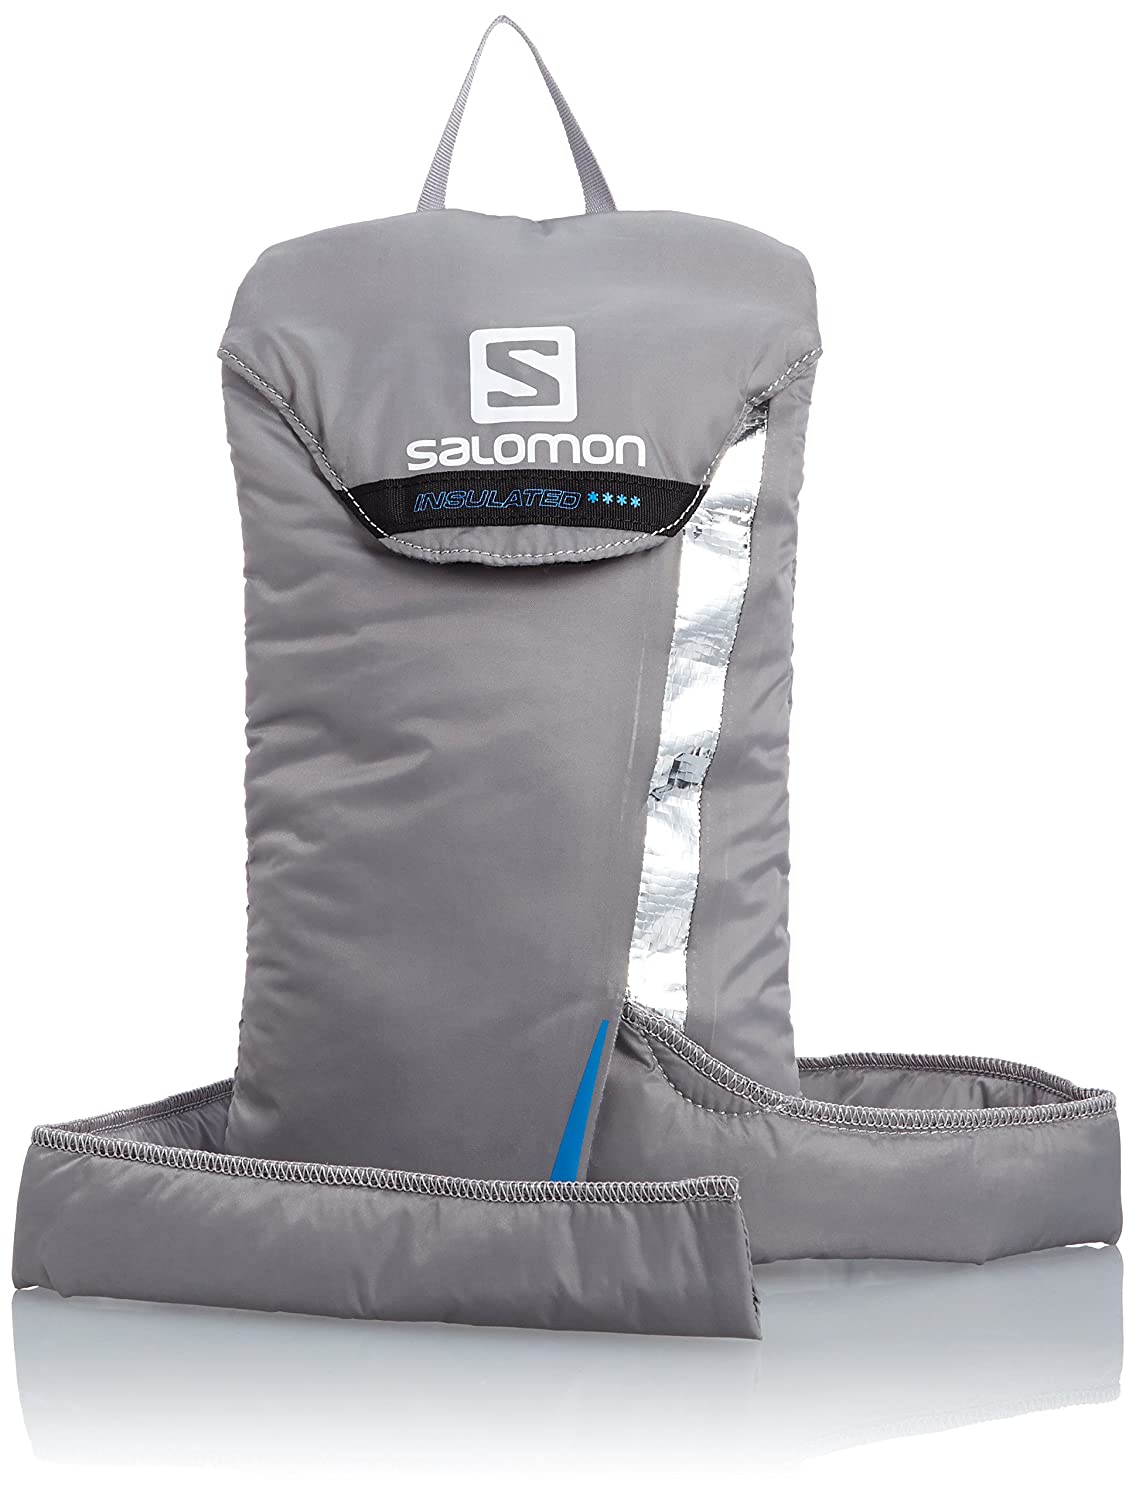 Salomon Insulated Hydration Kit - Talla Única L35209100